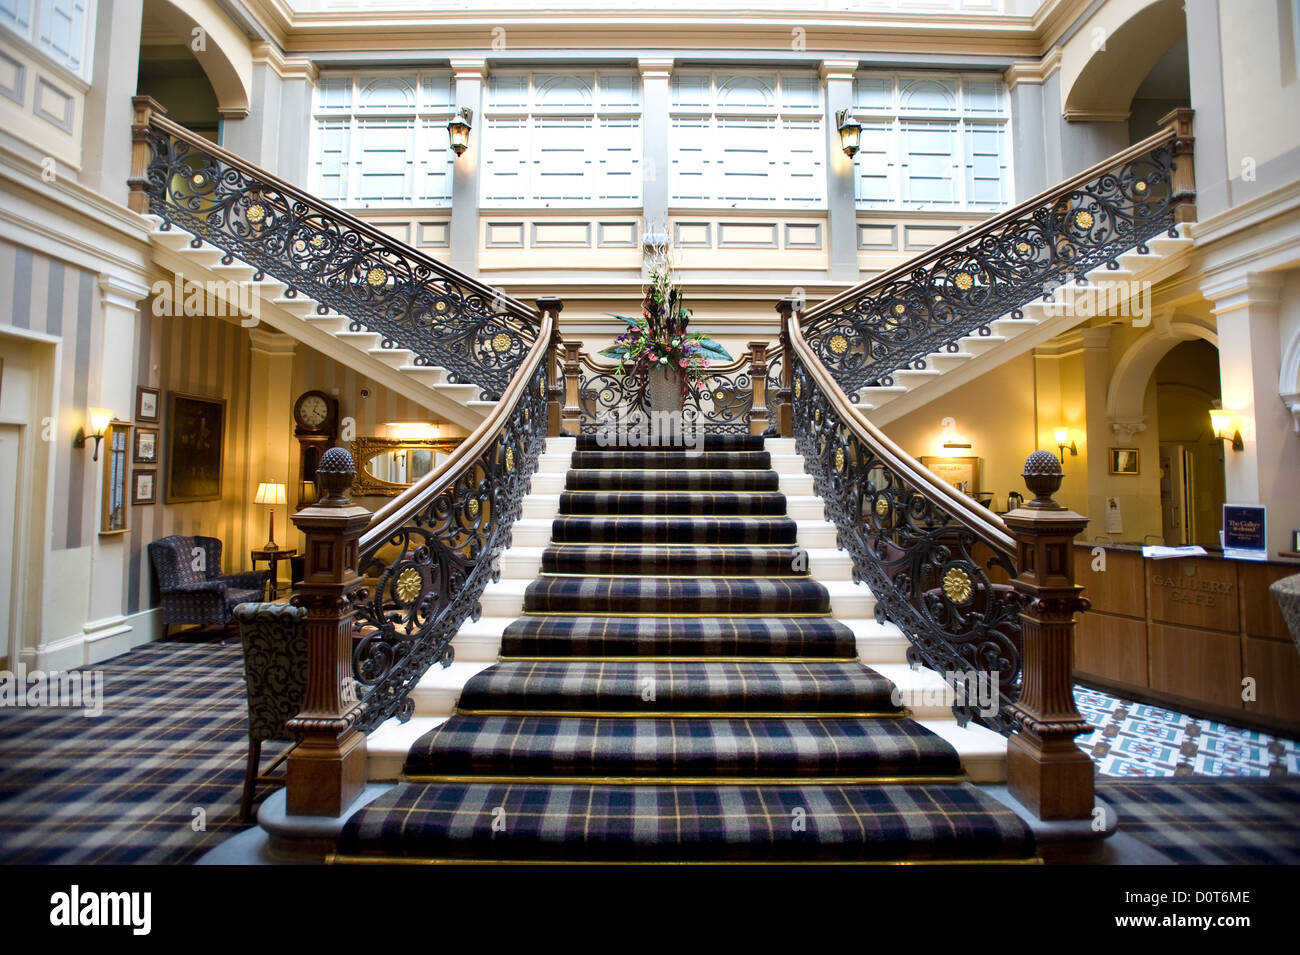 Floor Plans With Photos The Grand Staircase In The Highland Railway S Quot Station